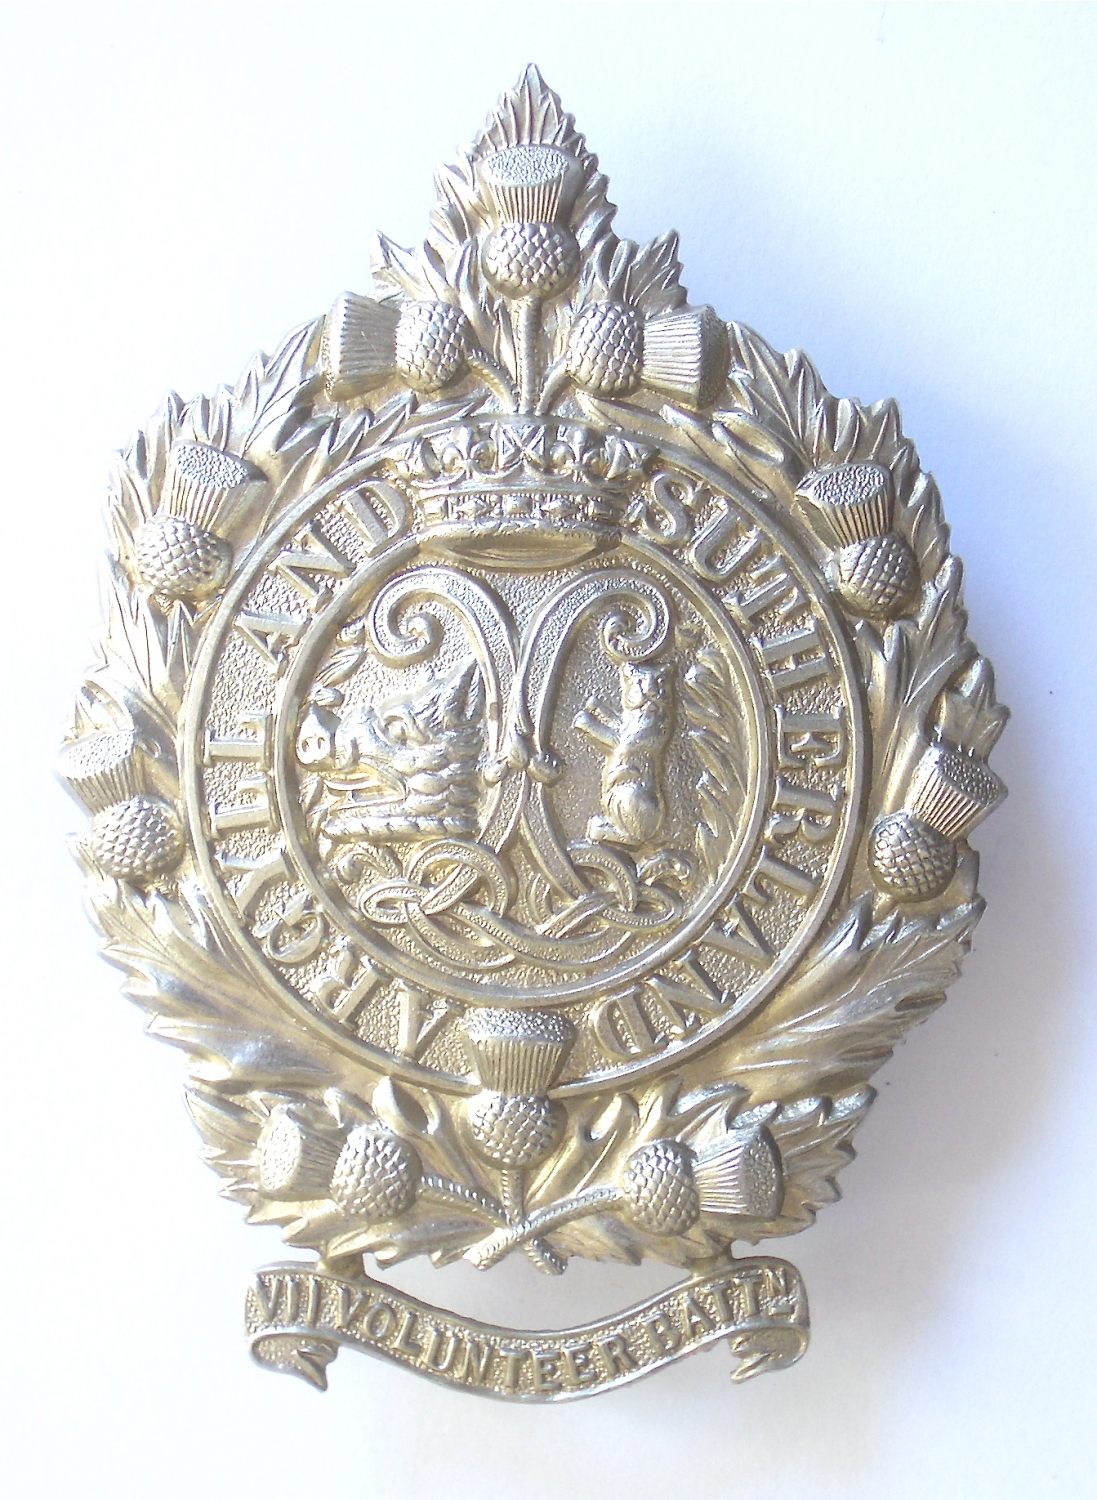 7th VB Argyll & Sutherland glengarry badge